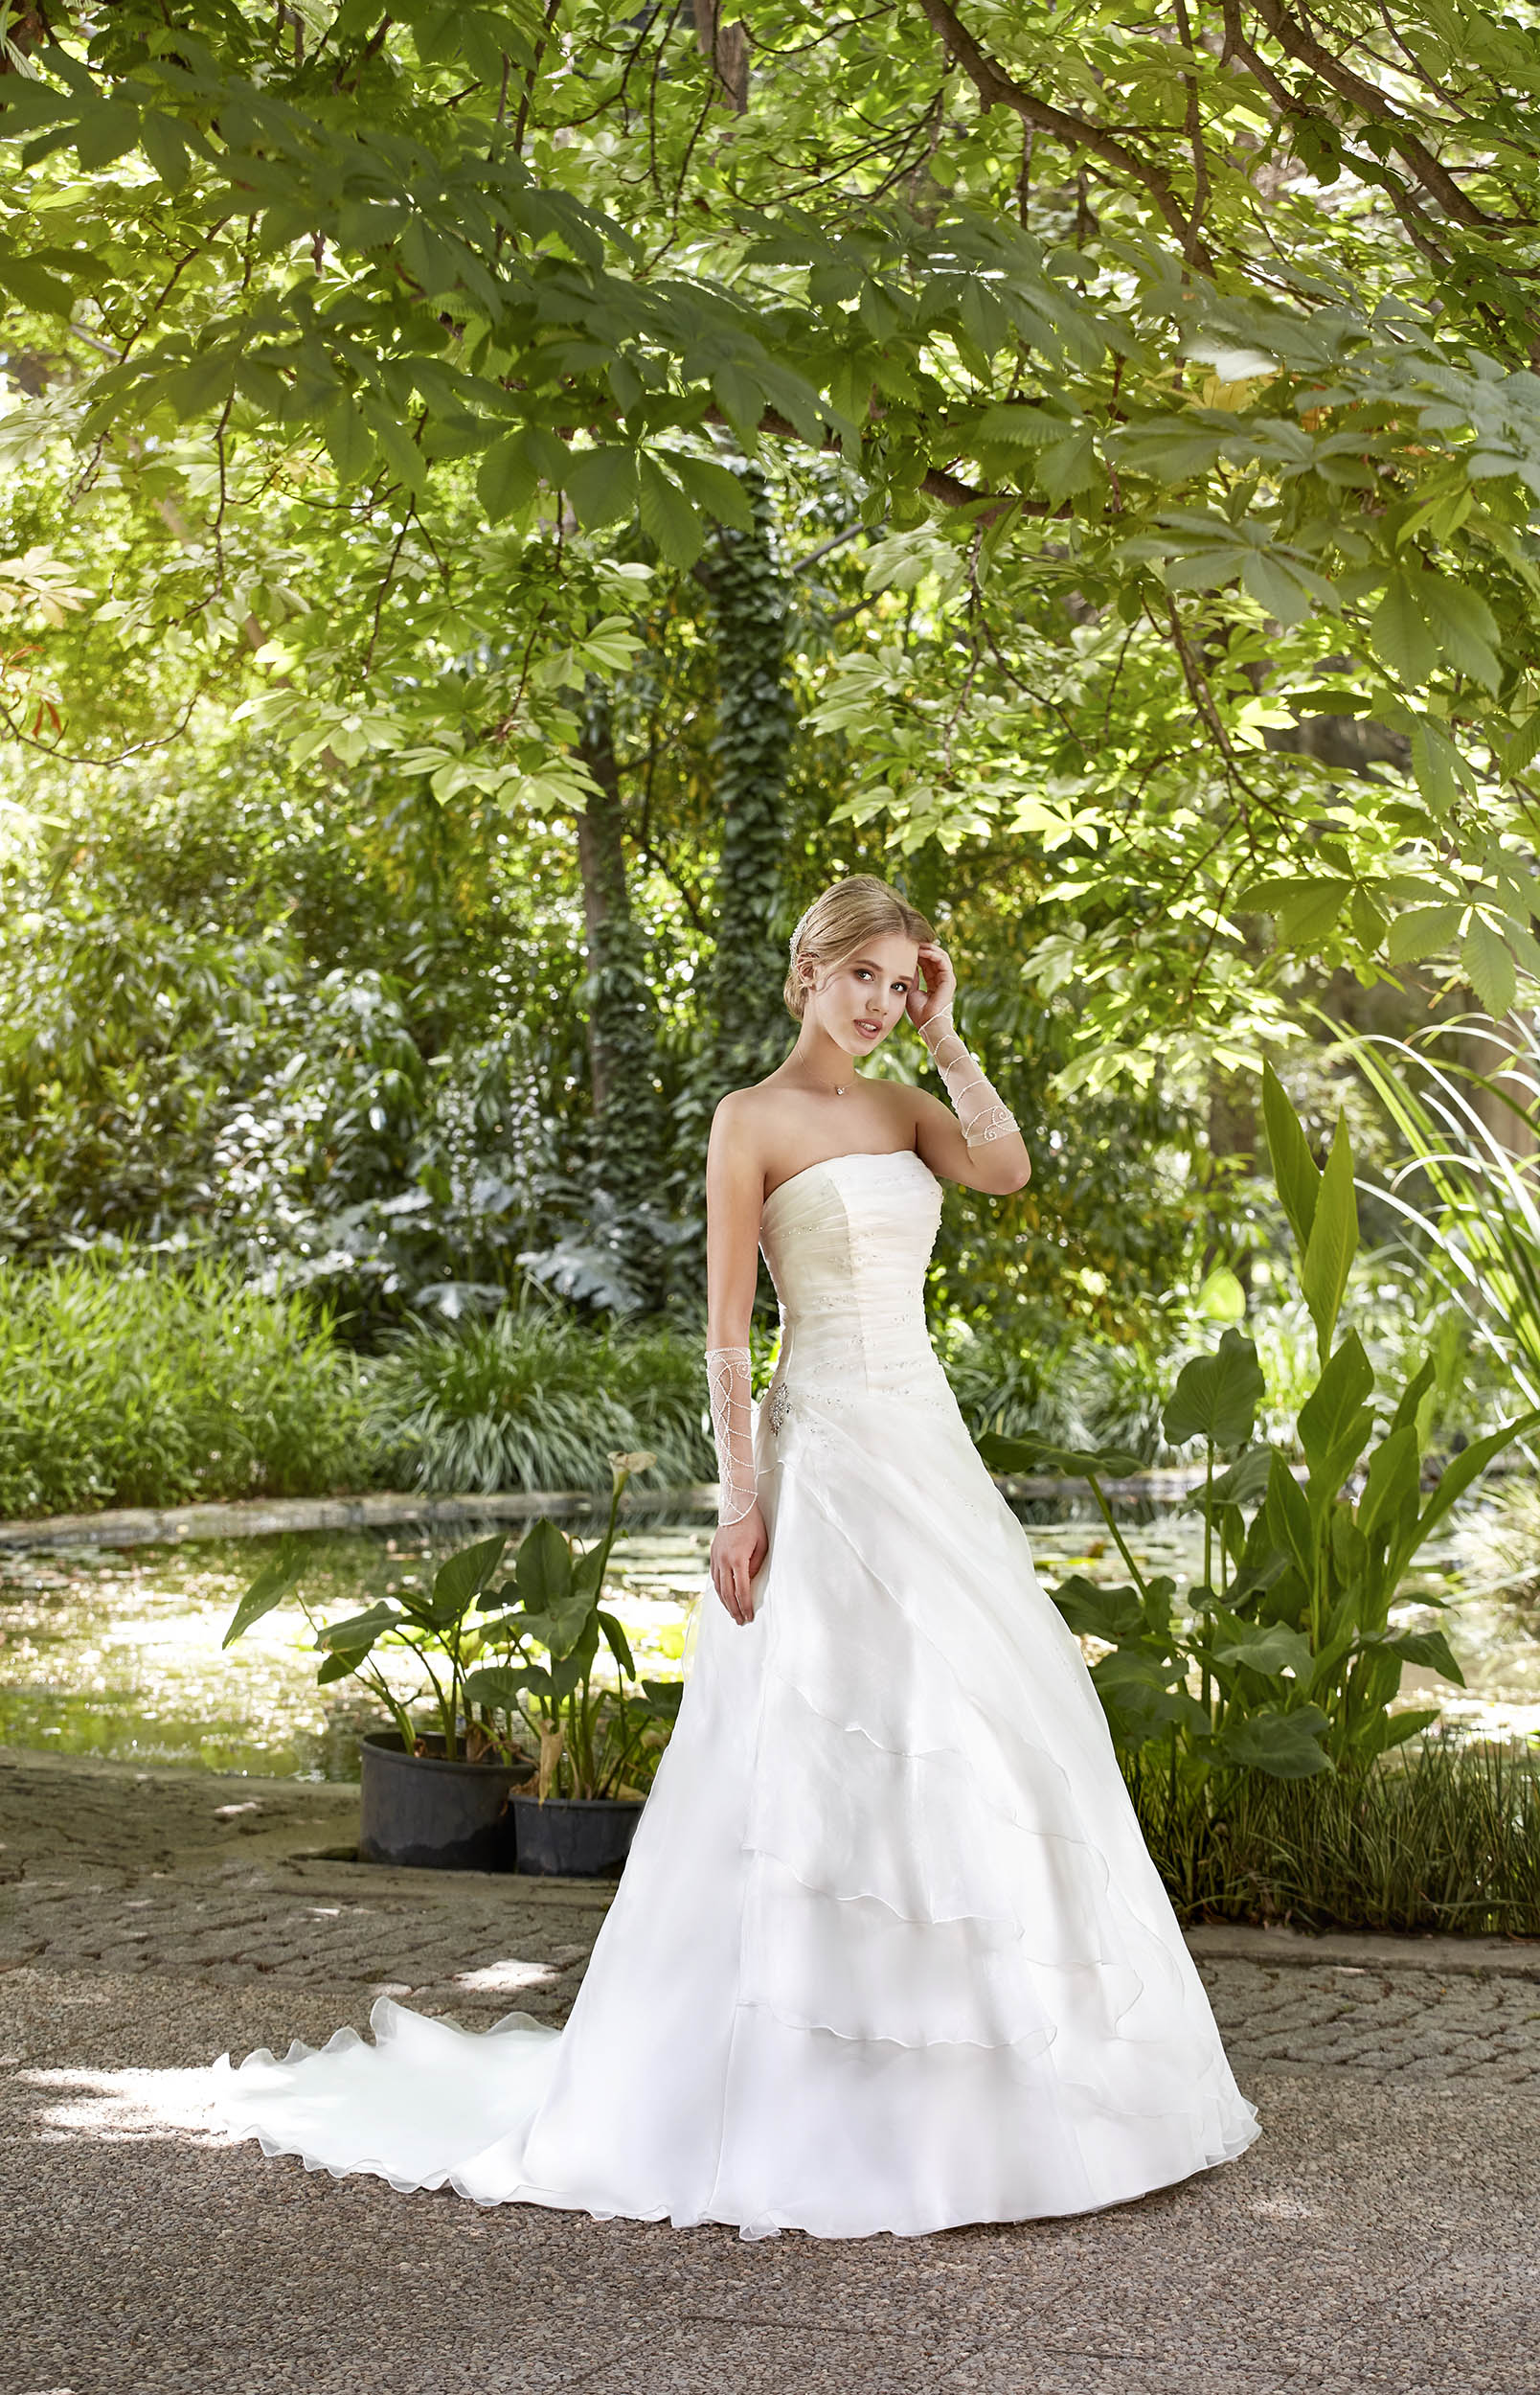 Point Mariage – France